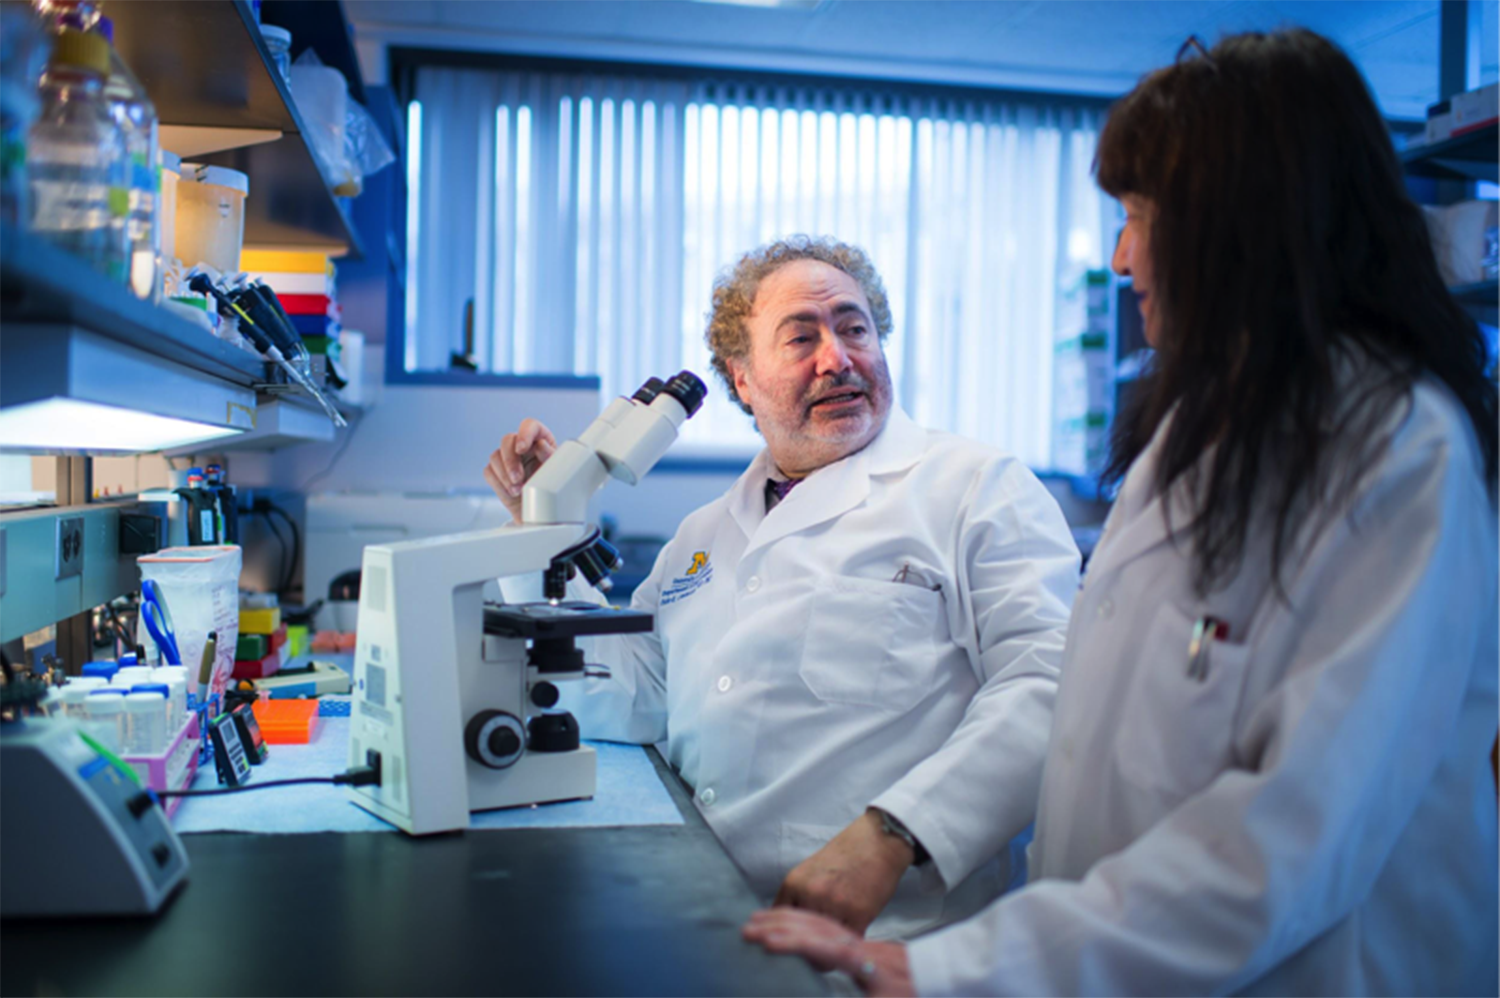 María Castro and her husband Pedro Lowenstein at their lab at University of Michigan. Photo: Austin Thomason, Michigan Photography.